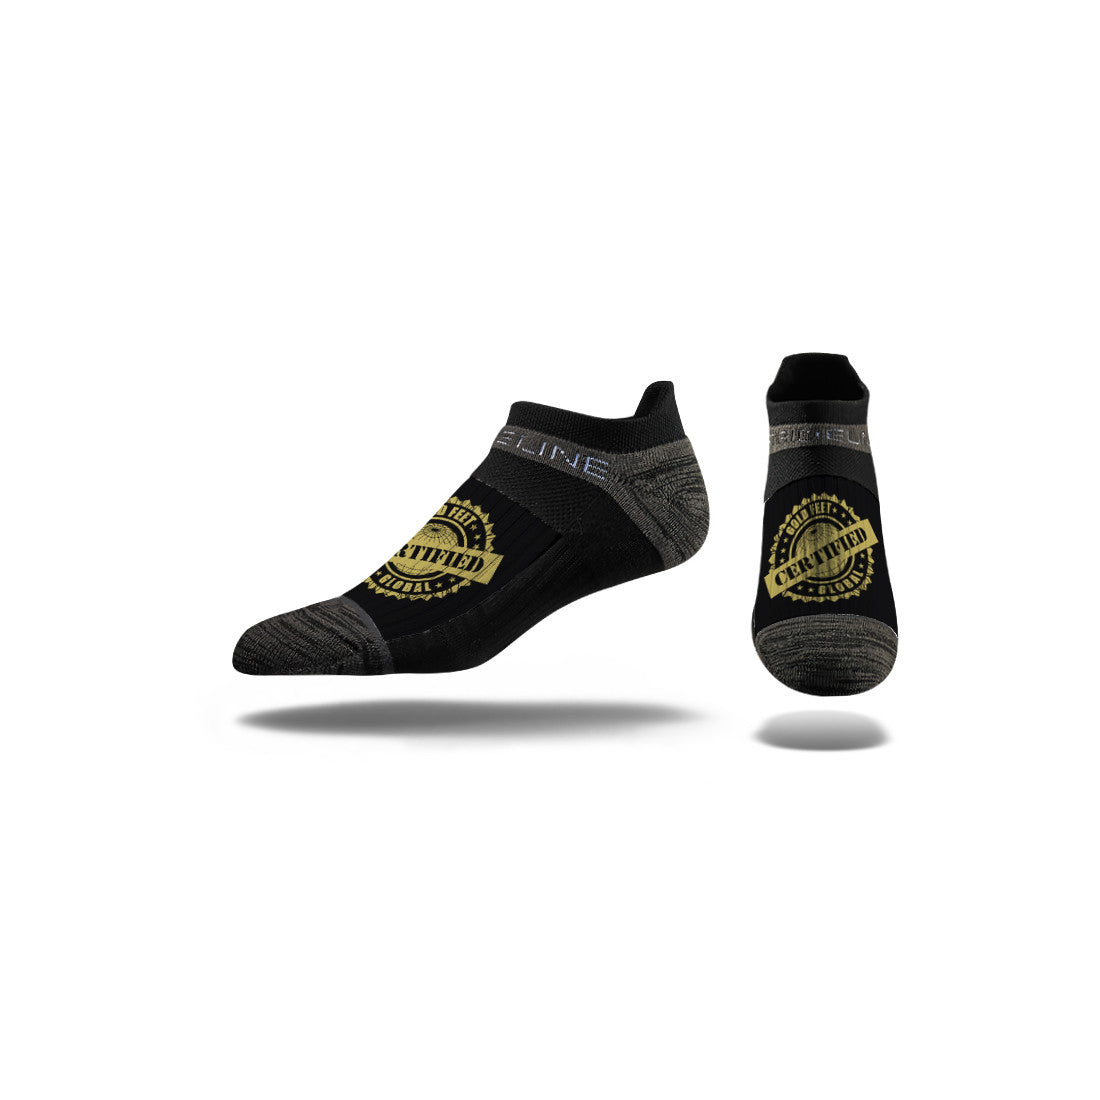 Gold Feet Global Black Low